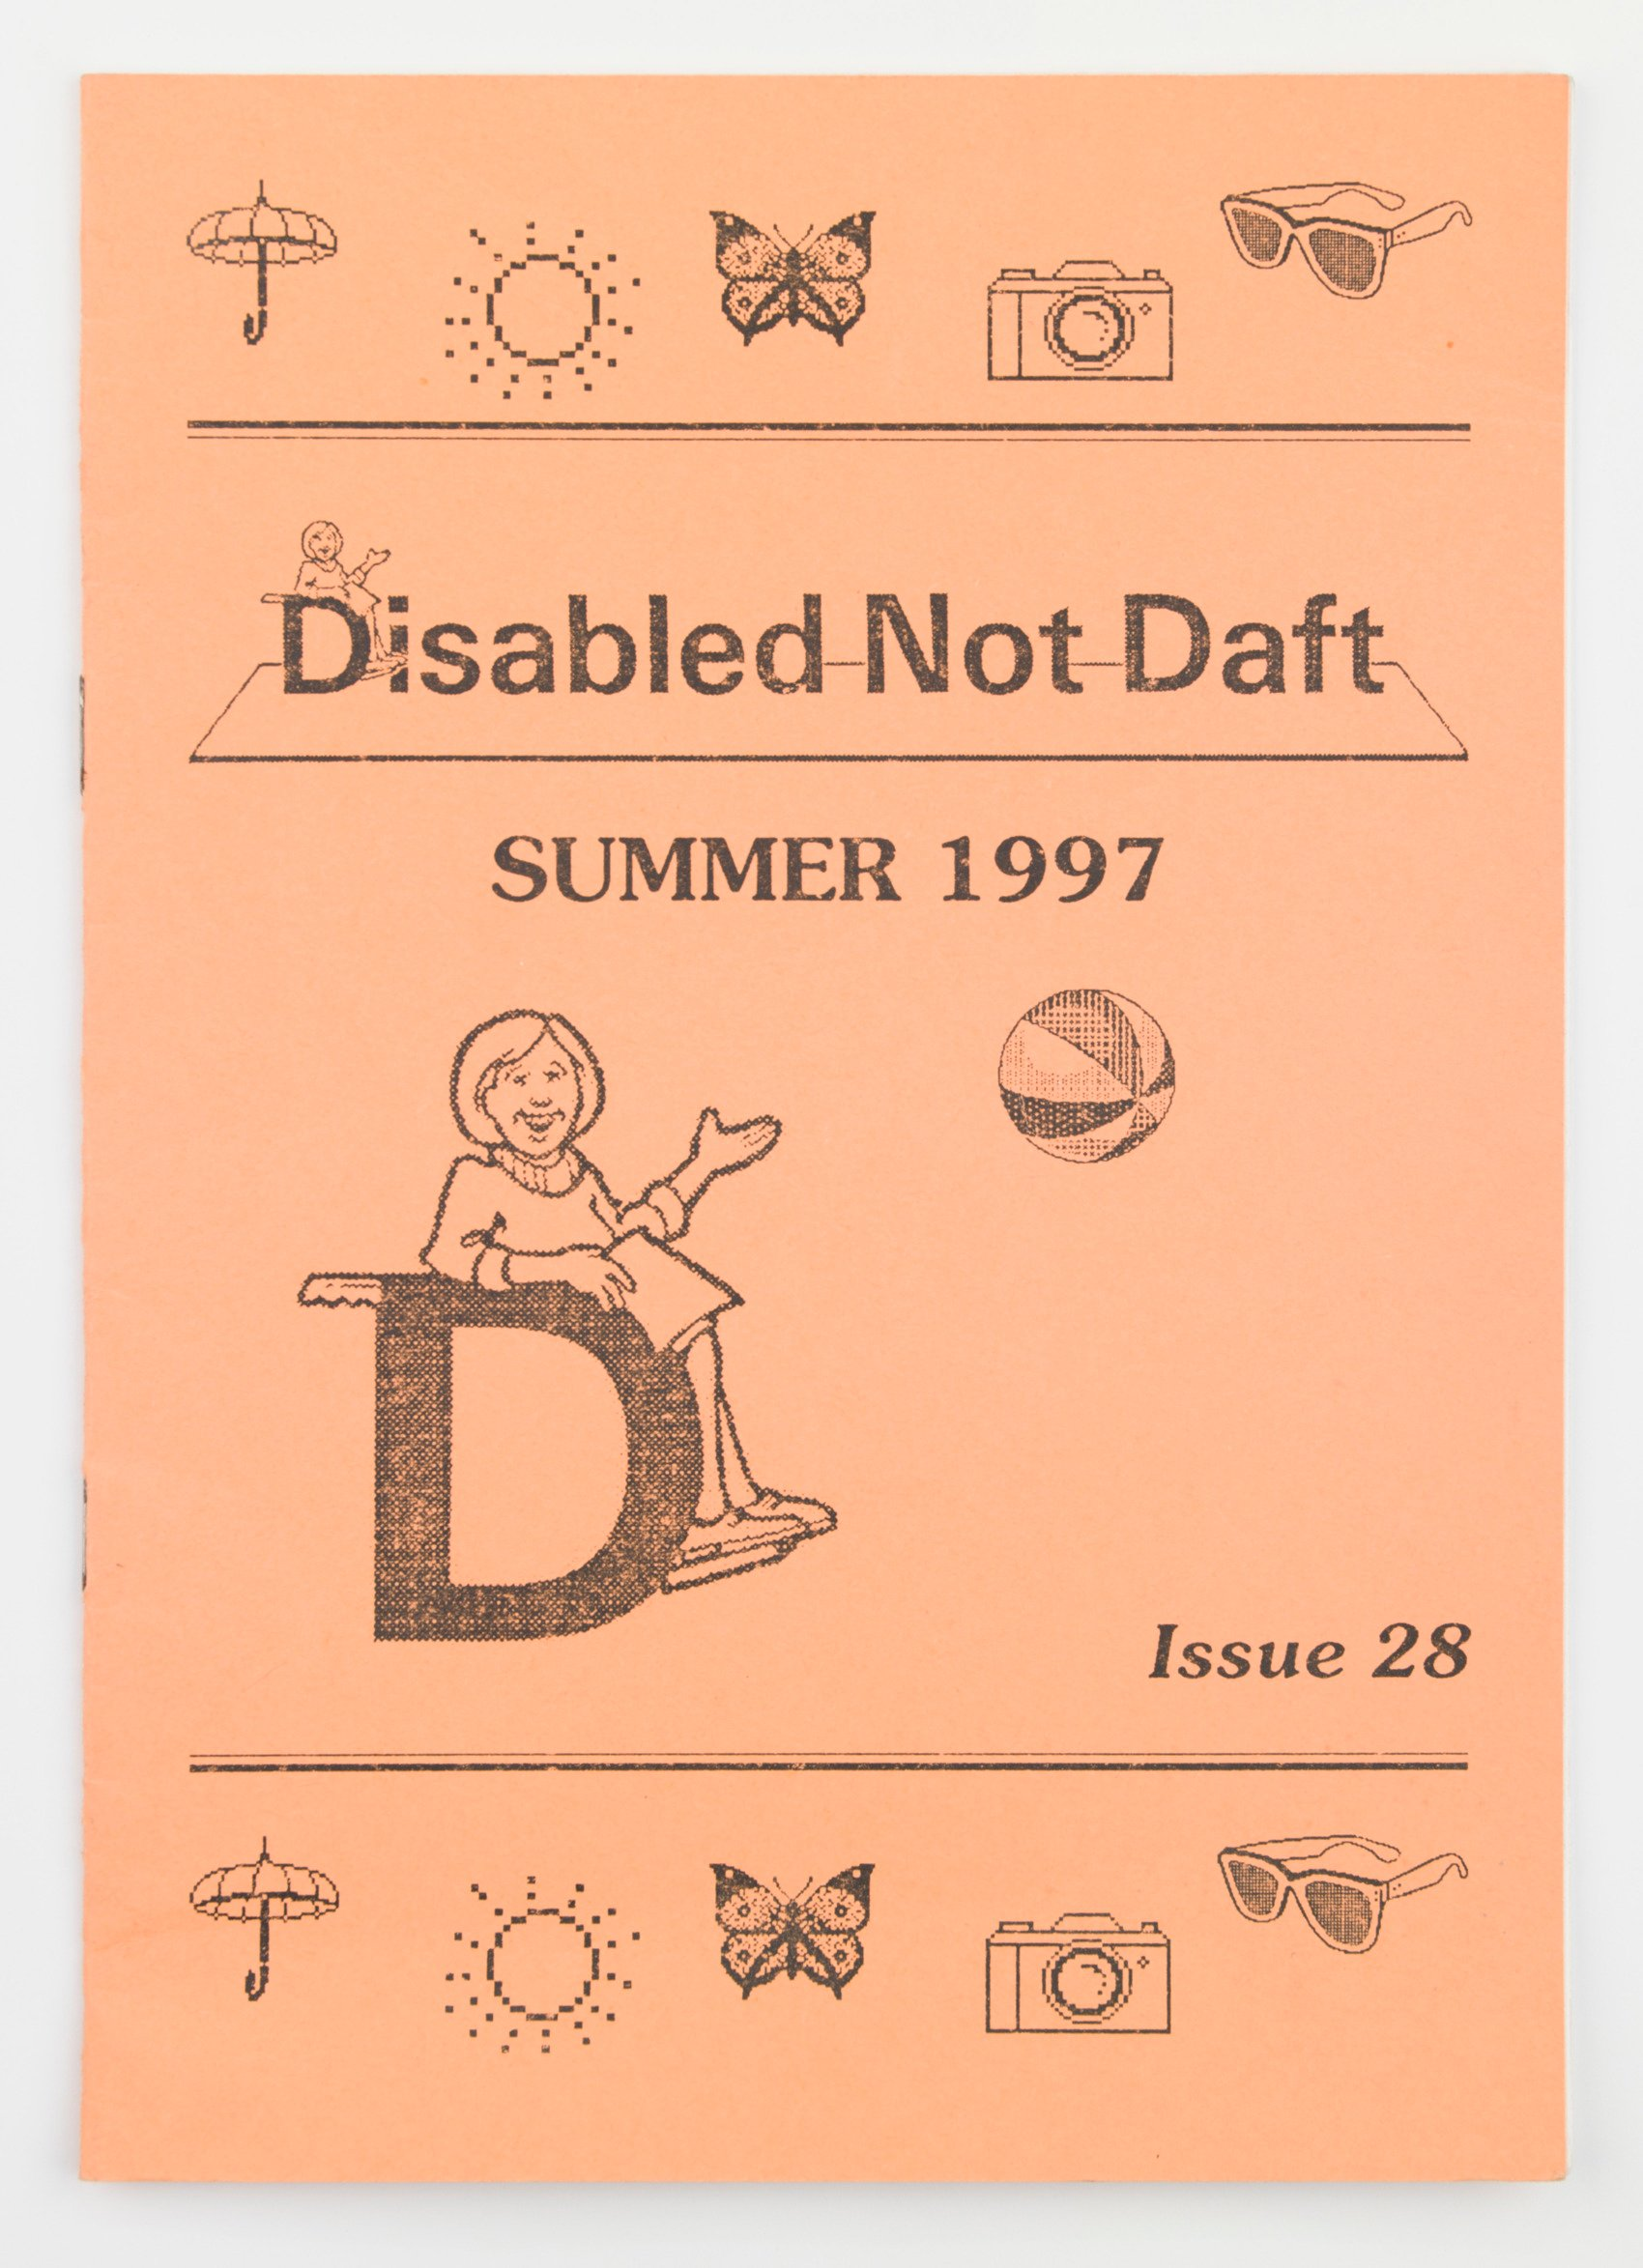 "an old pamphlet cover printed on peach coloured paper. The pamphlet title reads: ""Disabled Not Daft"" and shows an illustration of a wheelchair user."